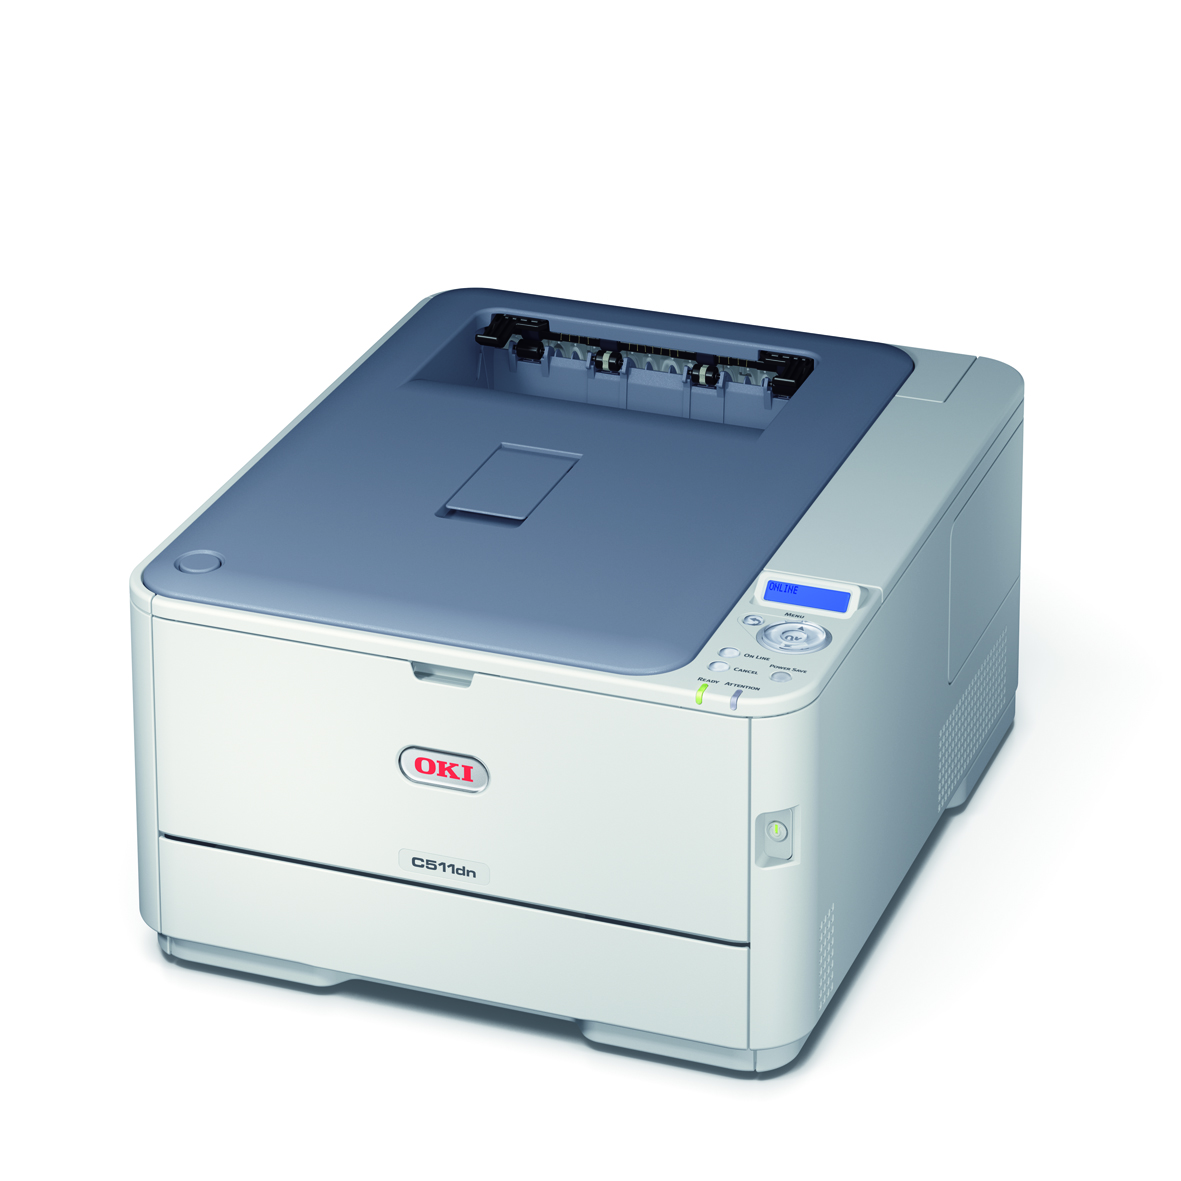 OKI-C511dn-Duplex-Network-A4-Colour-Laser-Printer